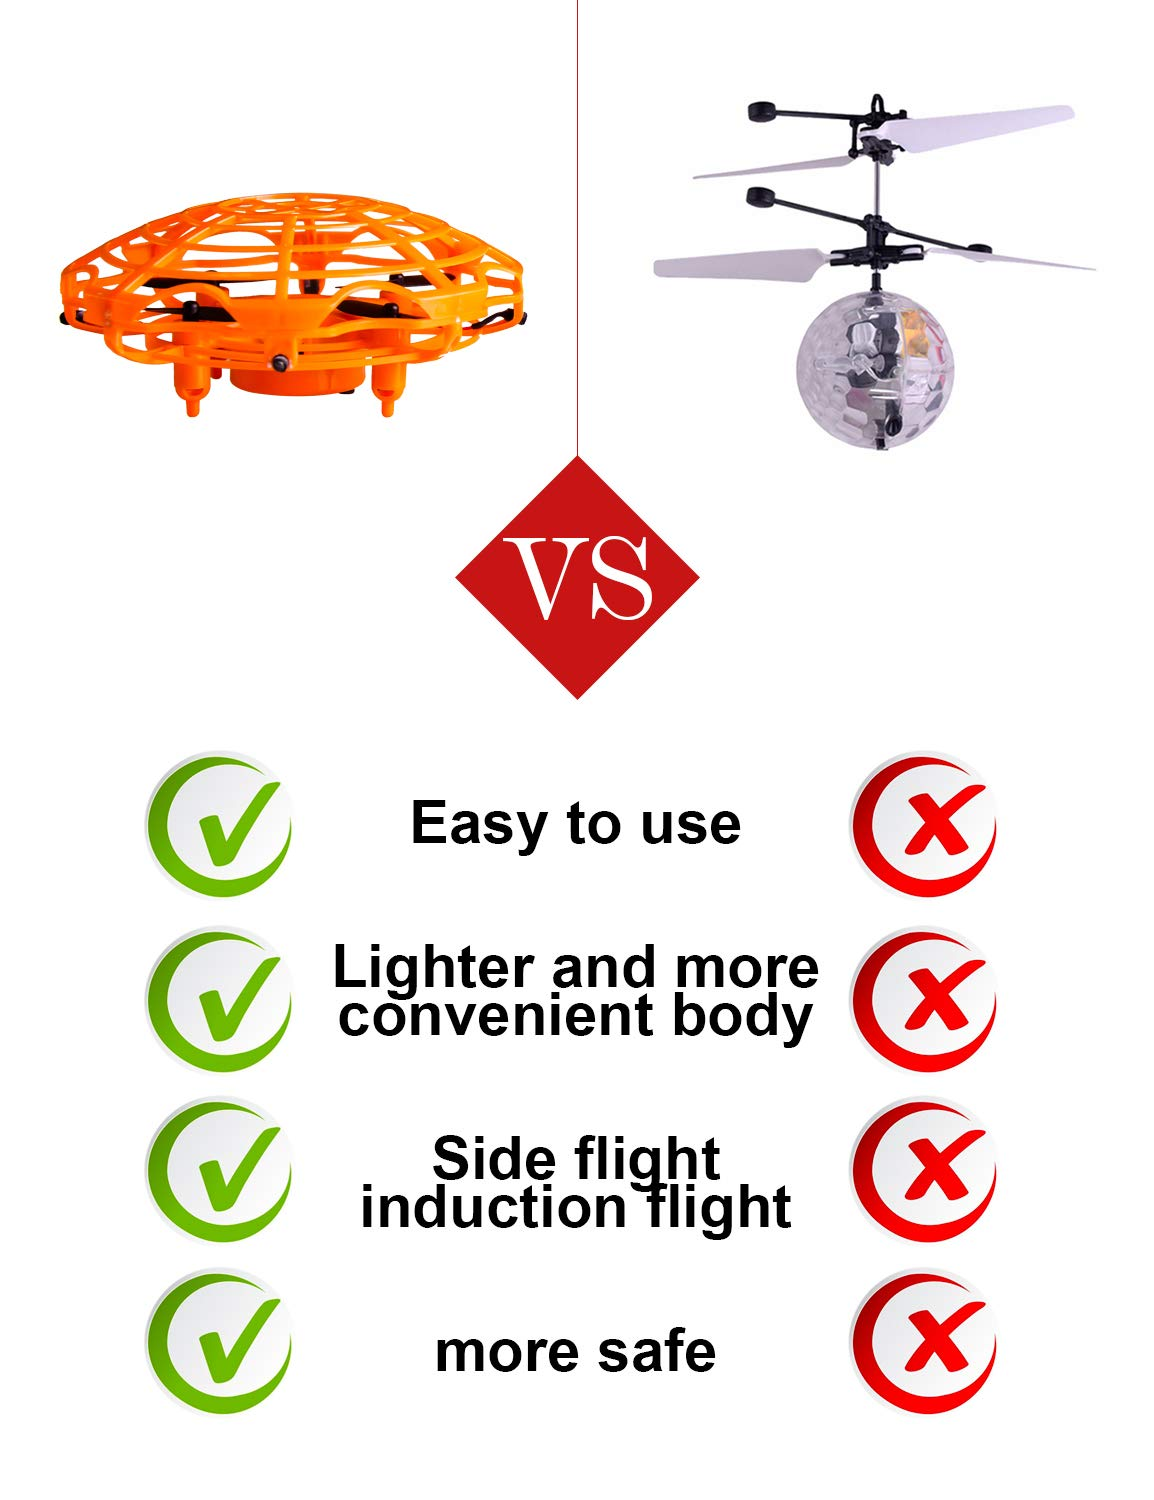 Refasy Flying Toys for Kids, UFO Toy for Boys 3 4 5 6 7 8 9 10 11 12 Year Old Drones for Kids Mini Drones Hand Controlled Flying Ball Drone Toys LED Light for Kids, Boys and Girls Toys Orange by Refasy (Image #7)